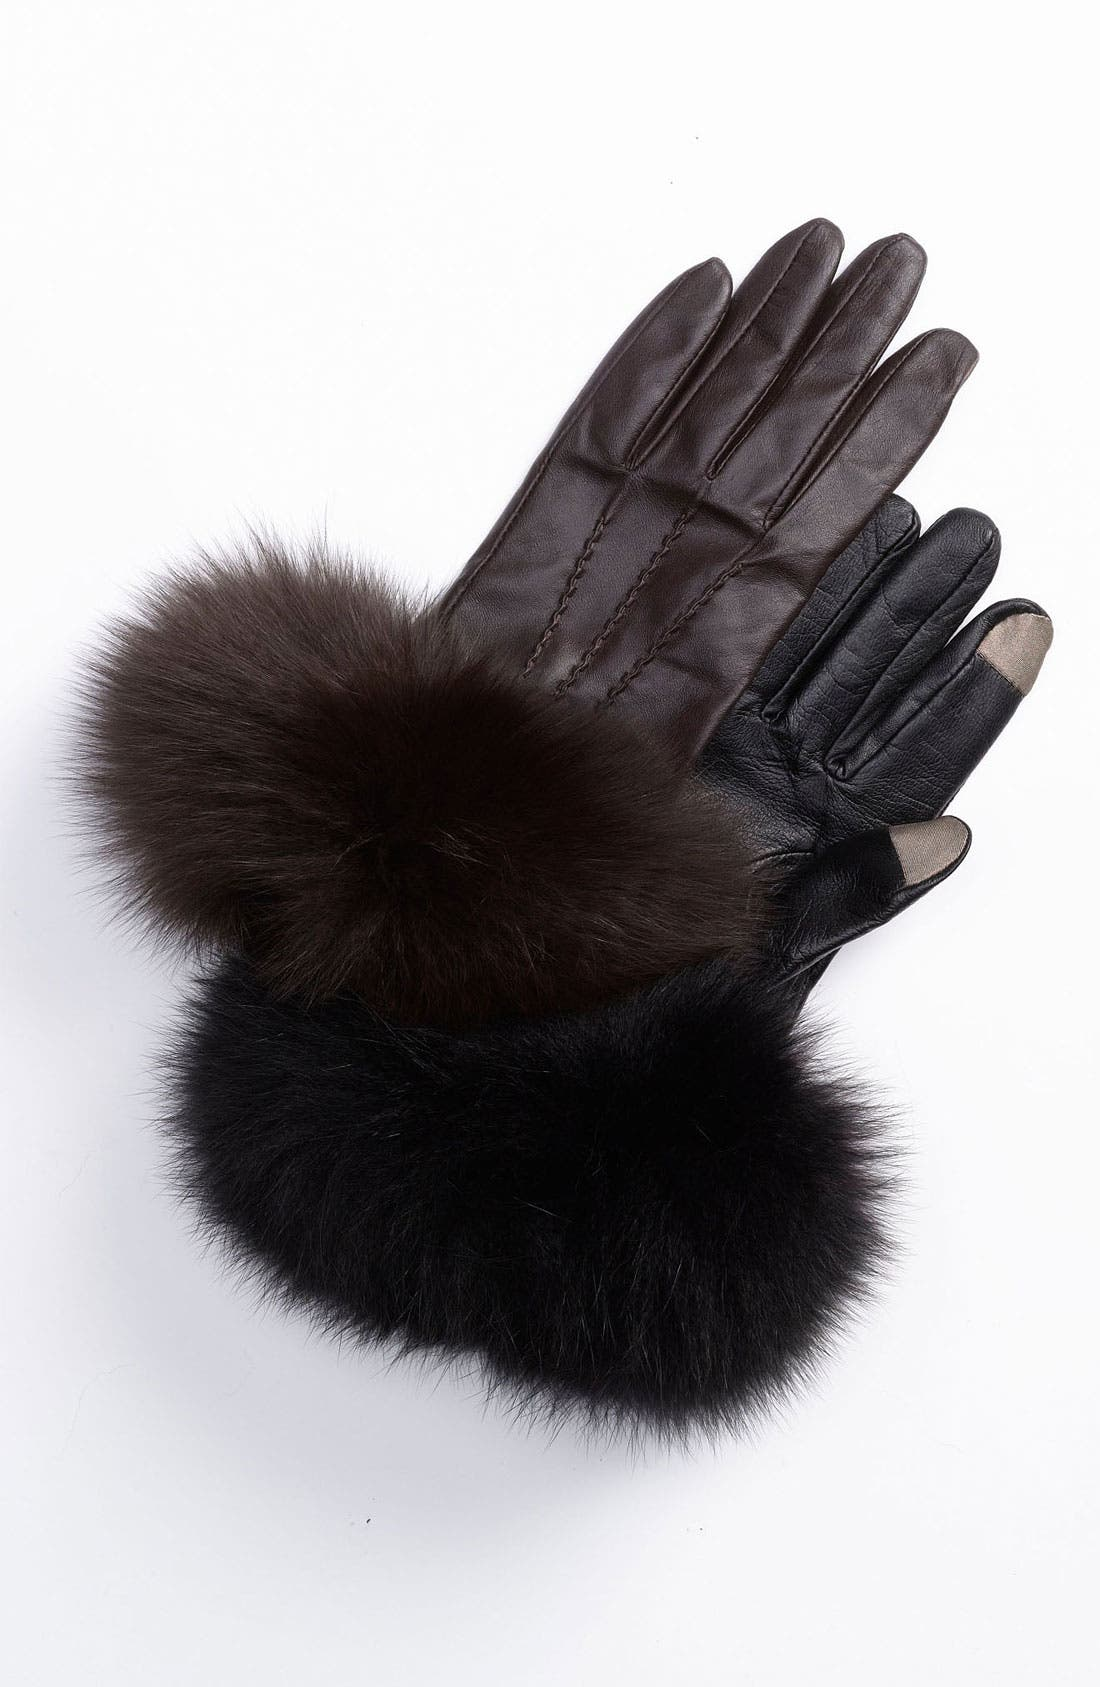 Main Image - Dena Products Genuine Fox Fur & Leather Tech Gloves